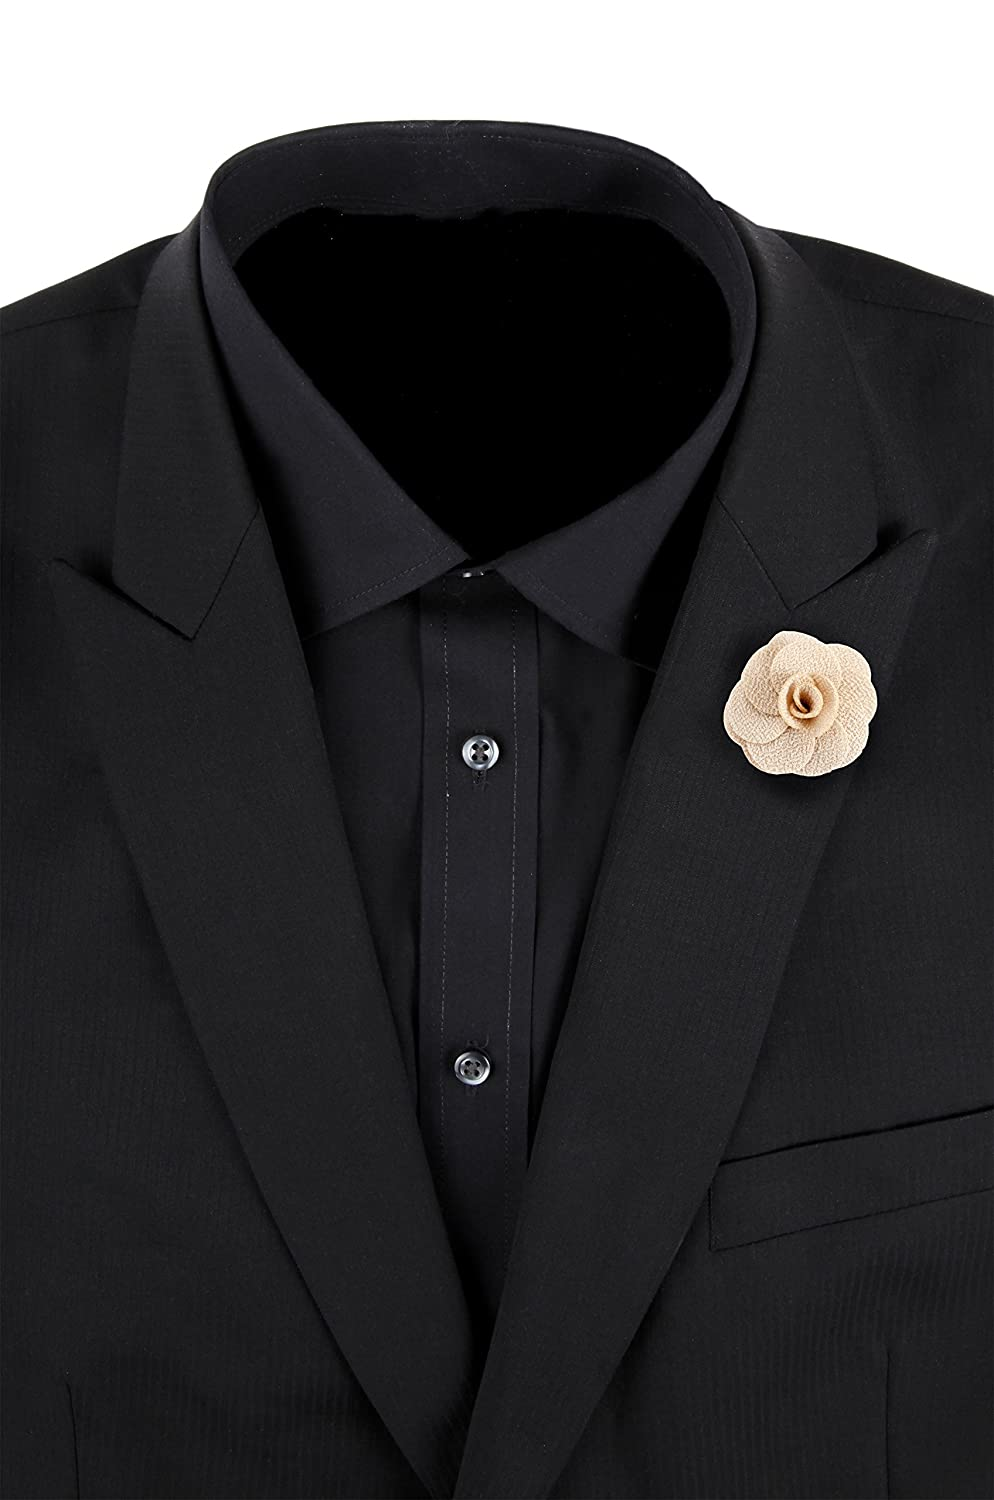 Mens Lapel Flower Pin Handmade Boutonniere For Suit Begonia